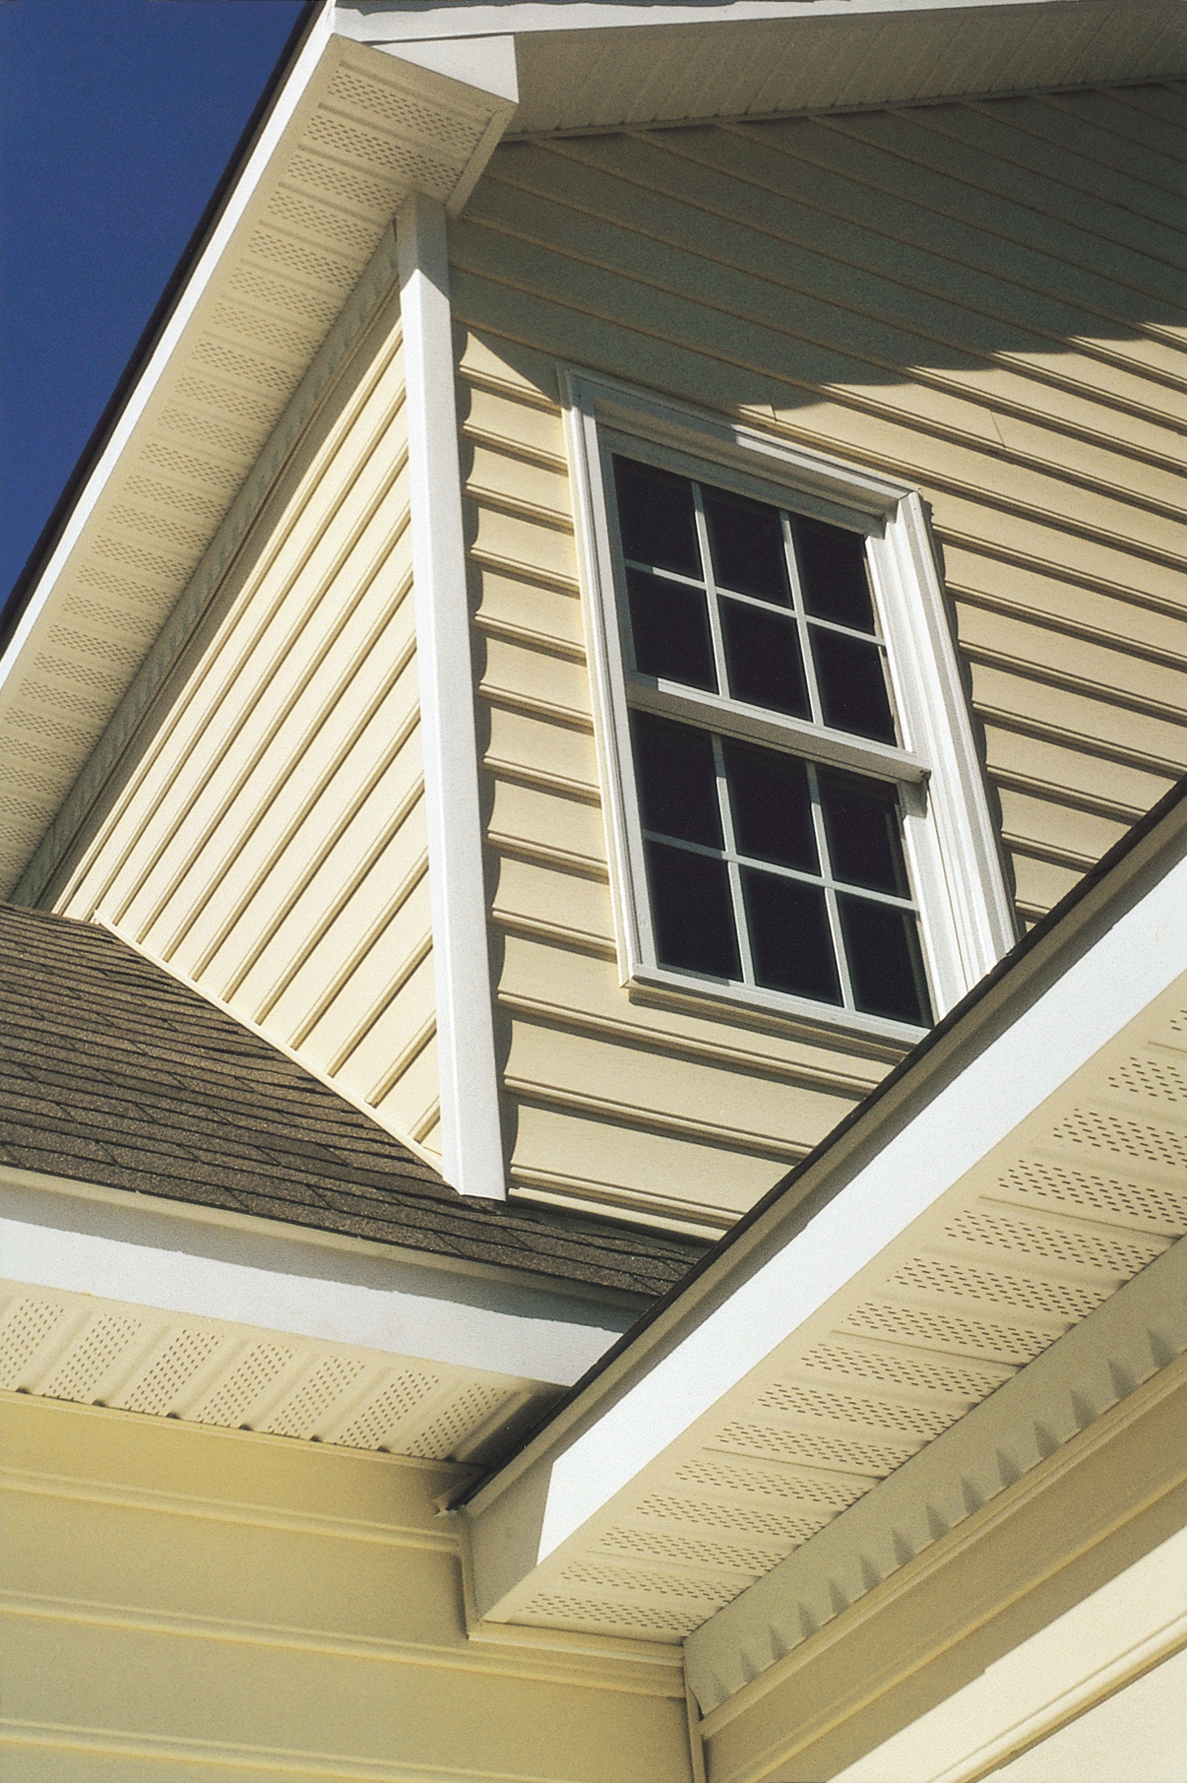 What Do You Know About Siding Important Info For Homeowners